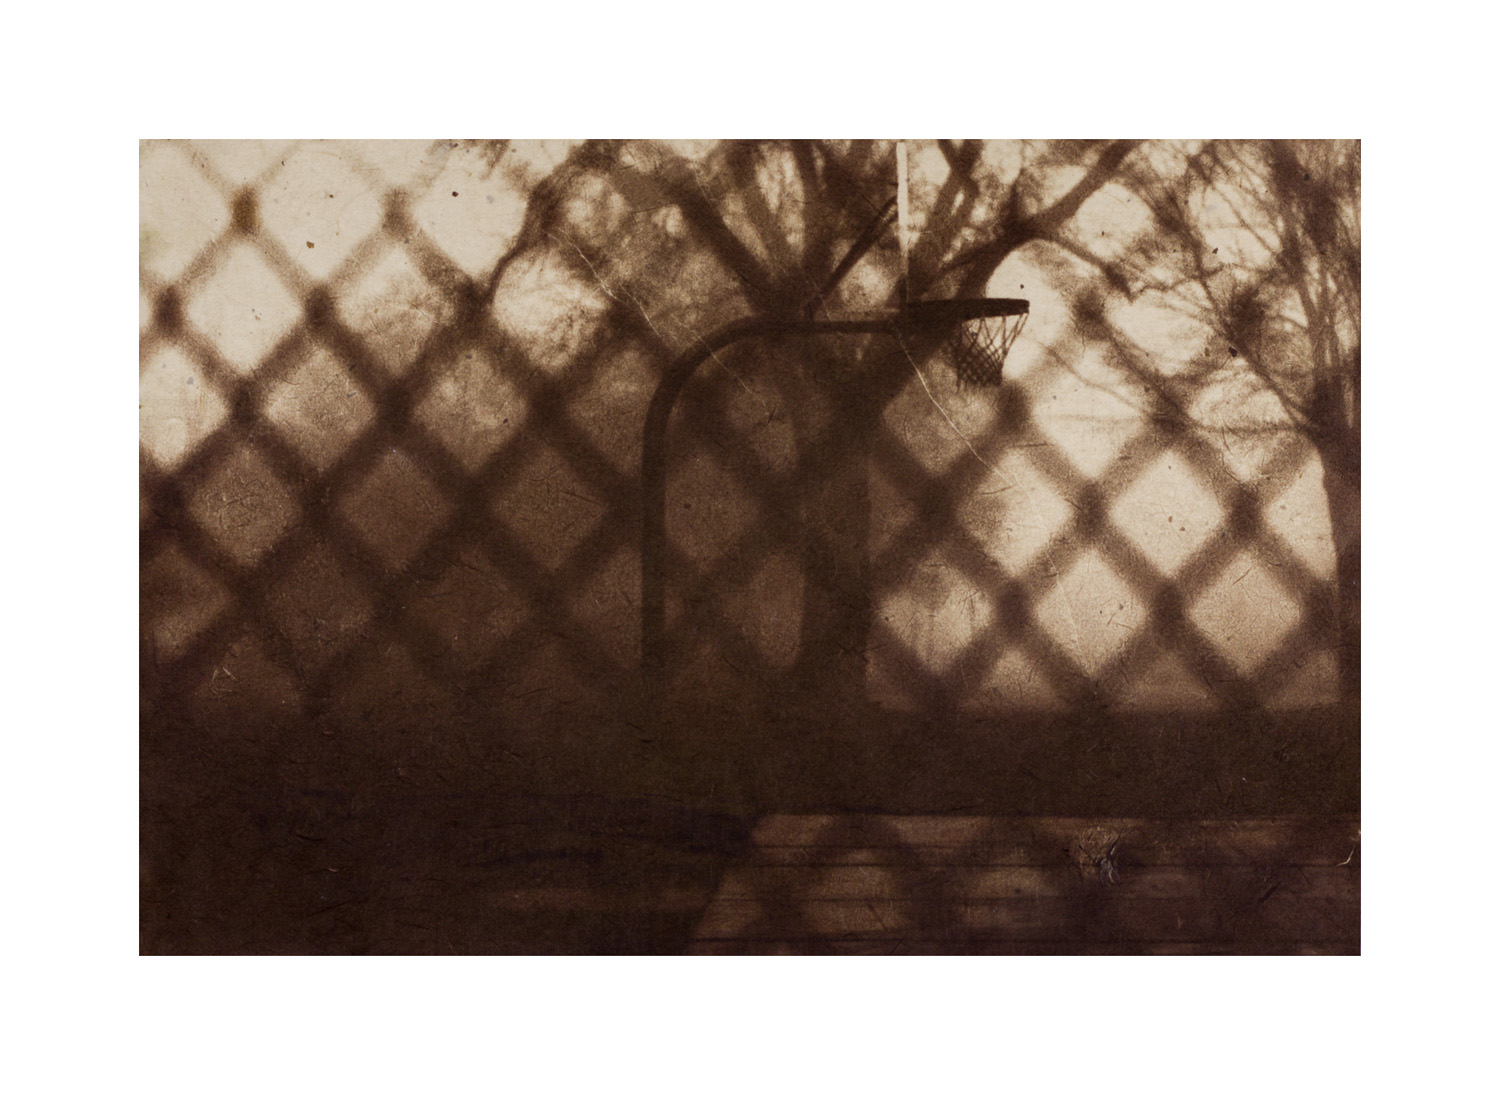 "Chain-link  Van Dyke brown print with chine collé 7 x 10"" 2013"